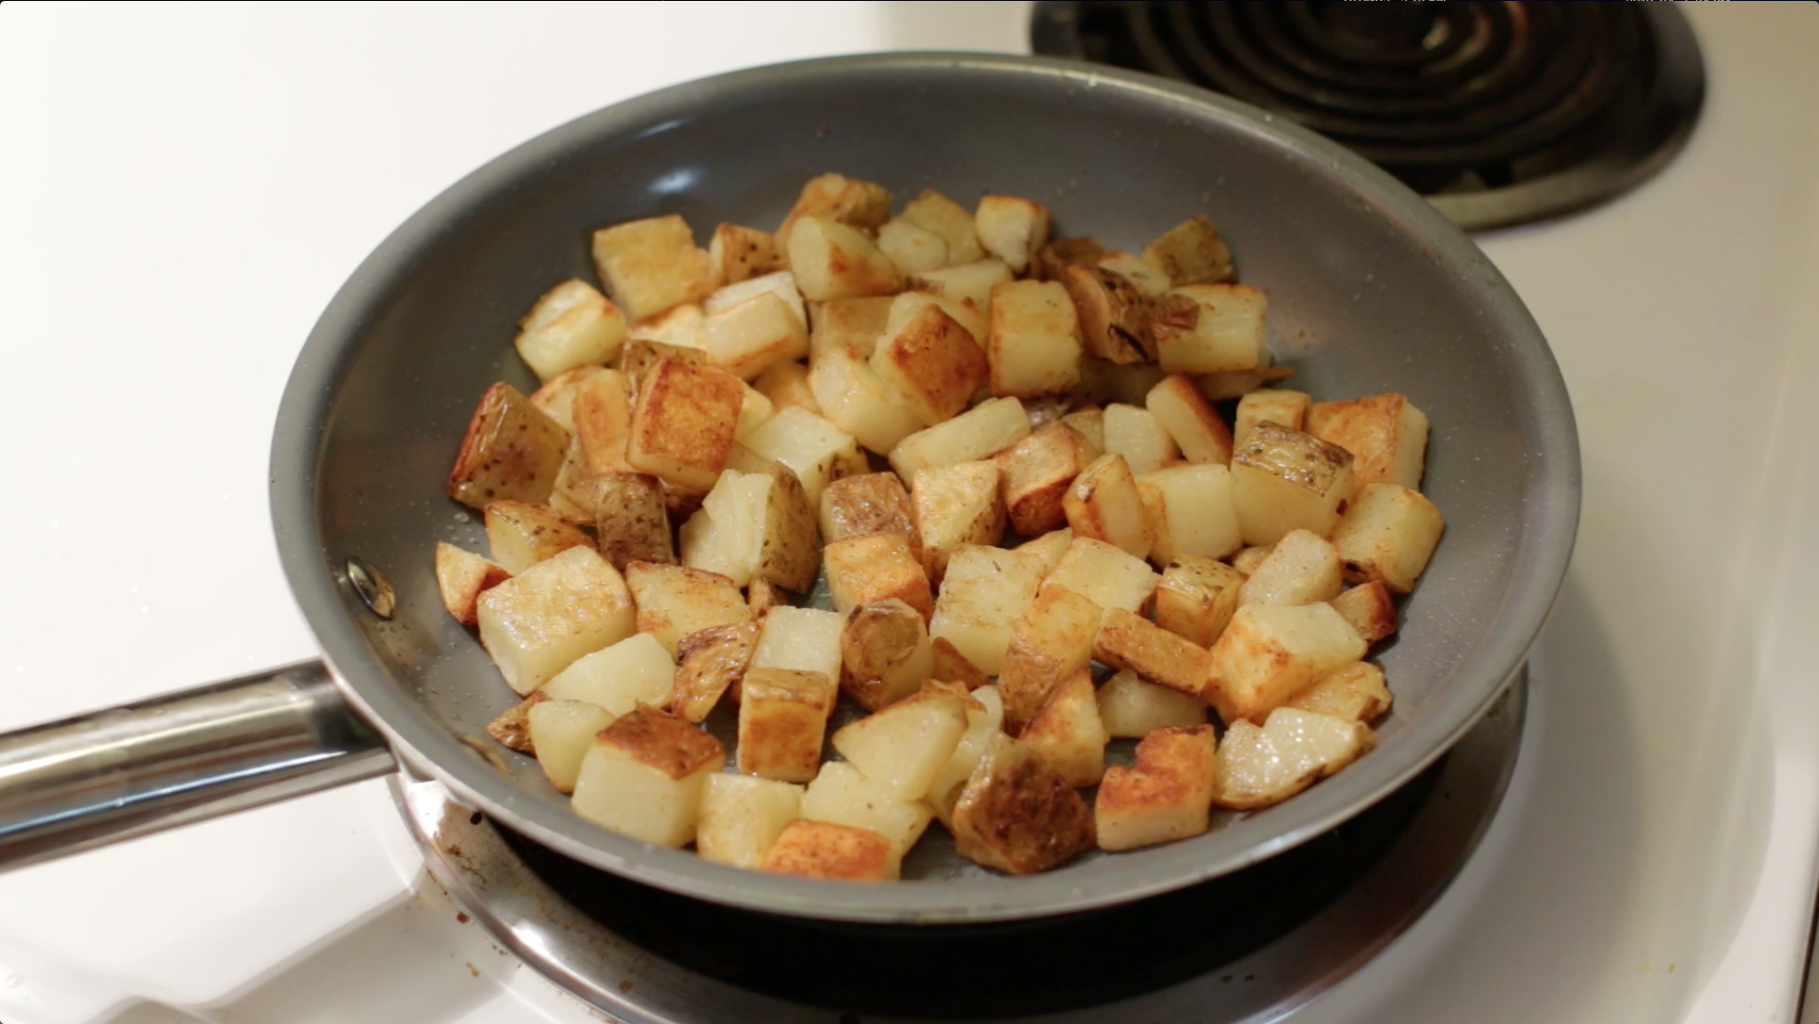 The Potatoes (Hash Browns)